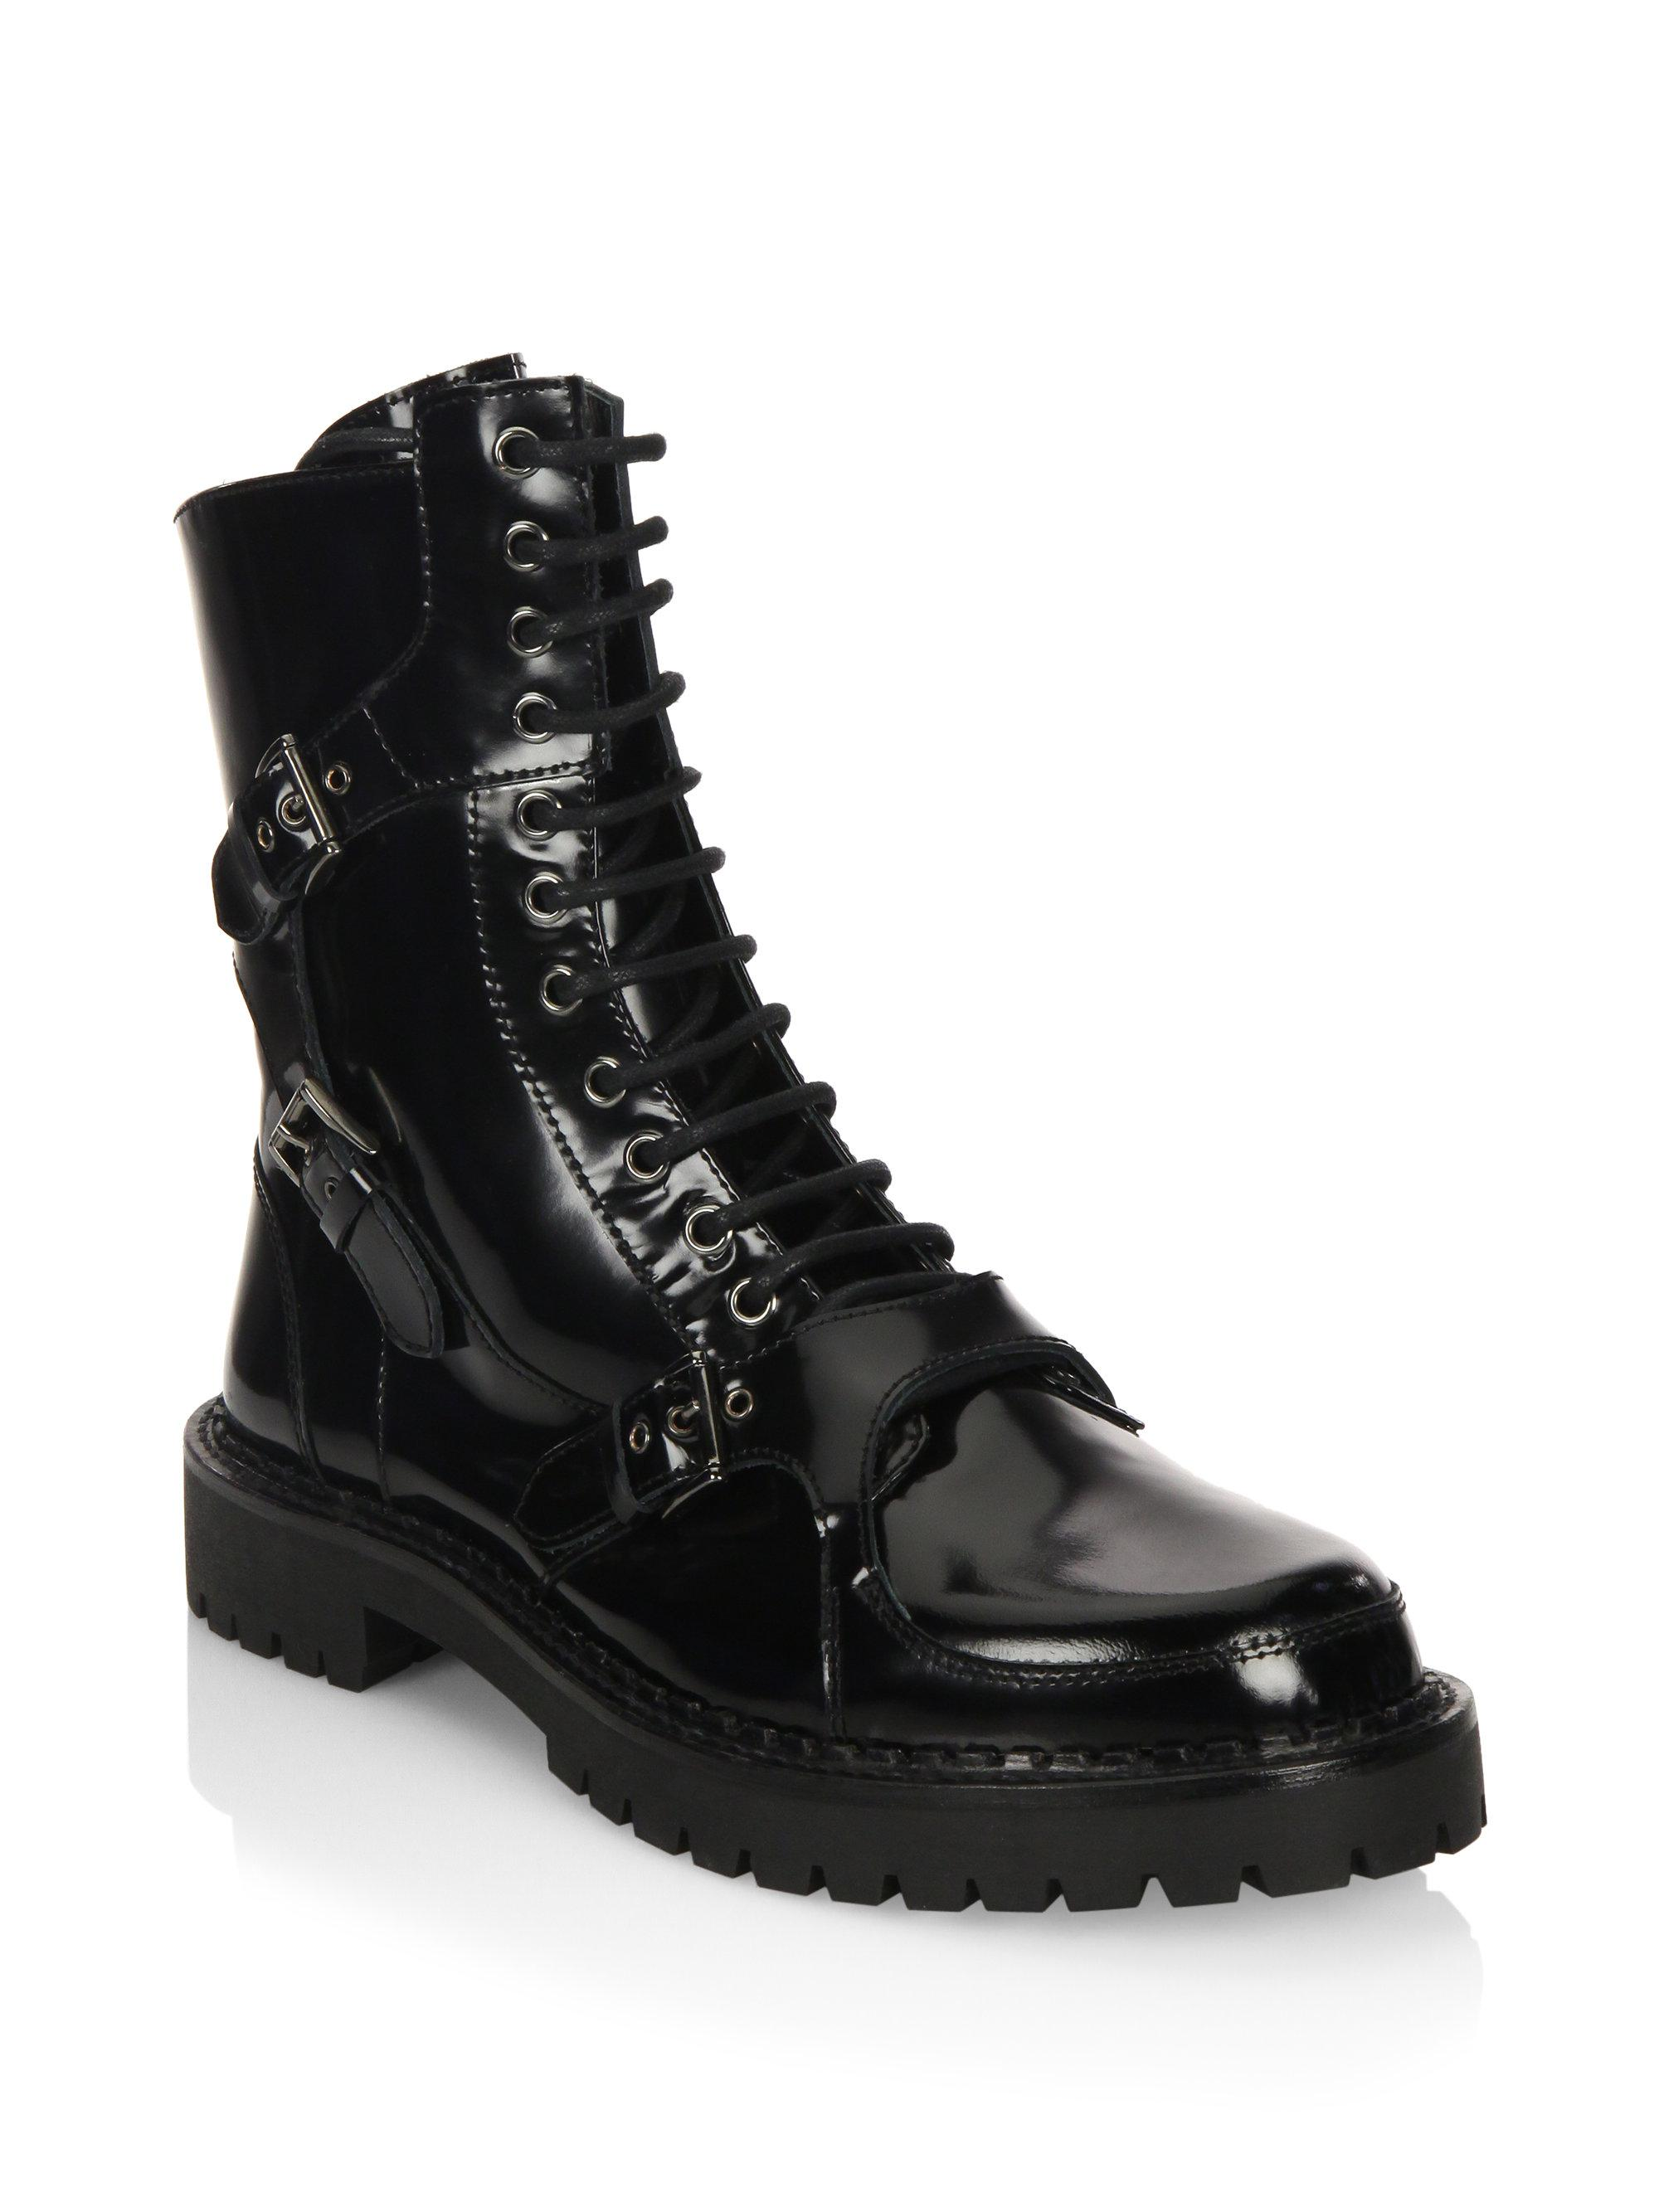 MoschinoLace-Up Leather Boots GIbxvx